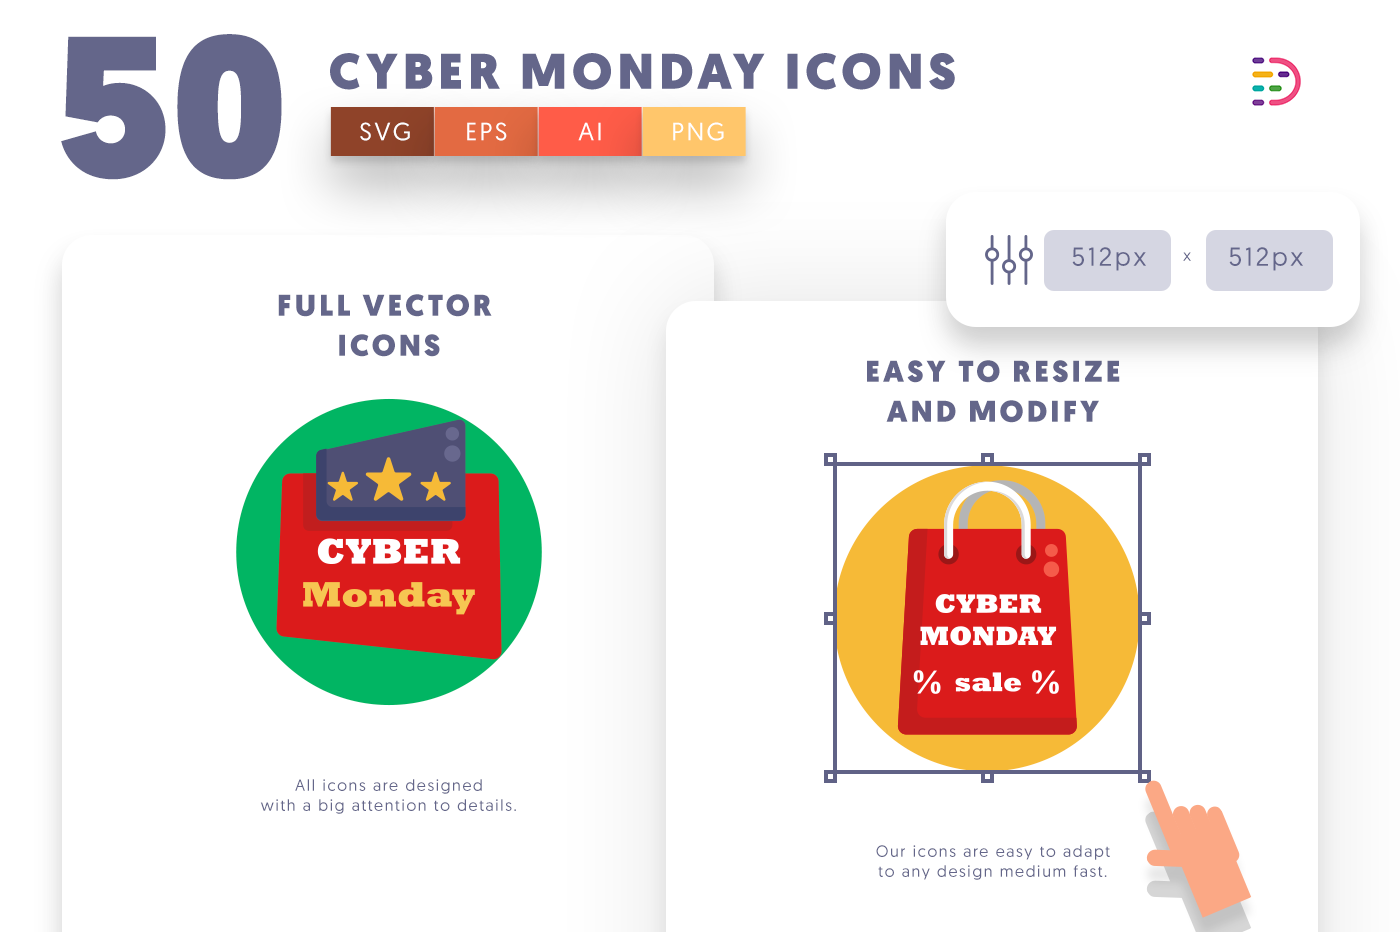 Full vector 50 Cyber Monday Icons